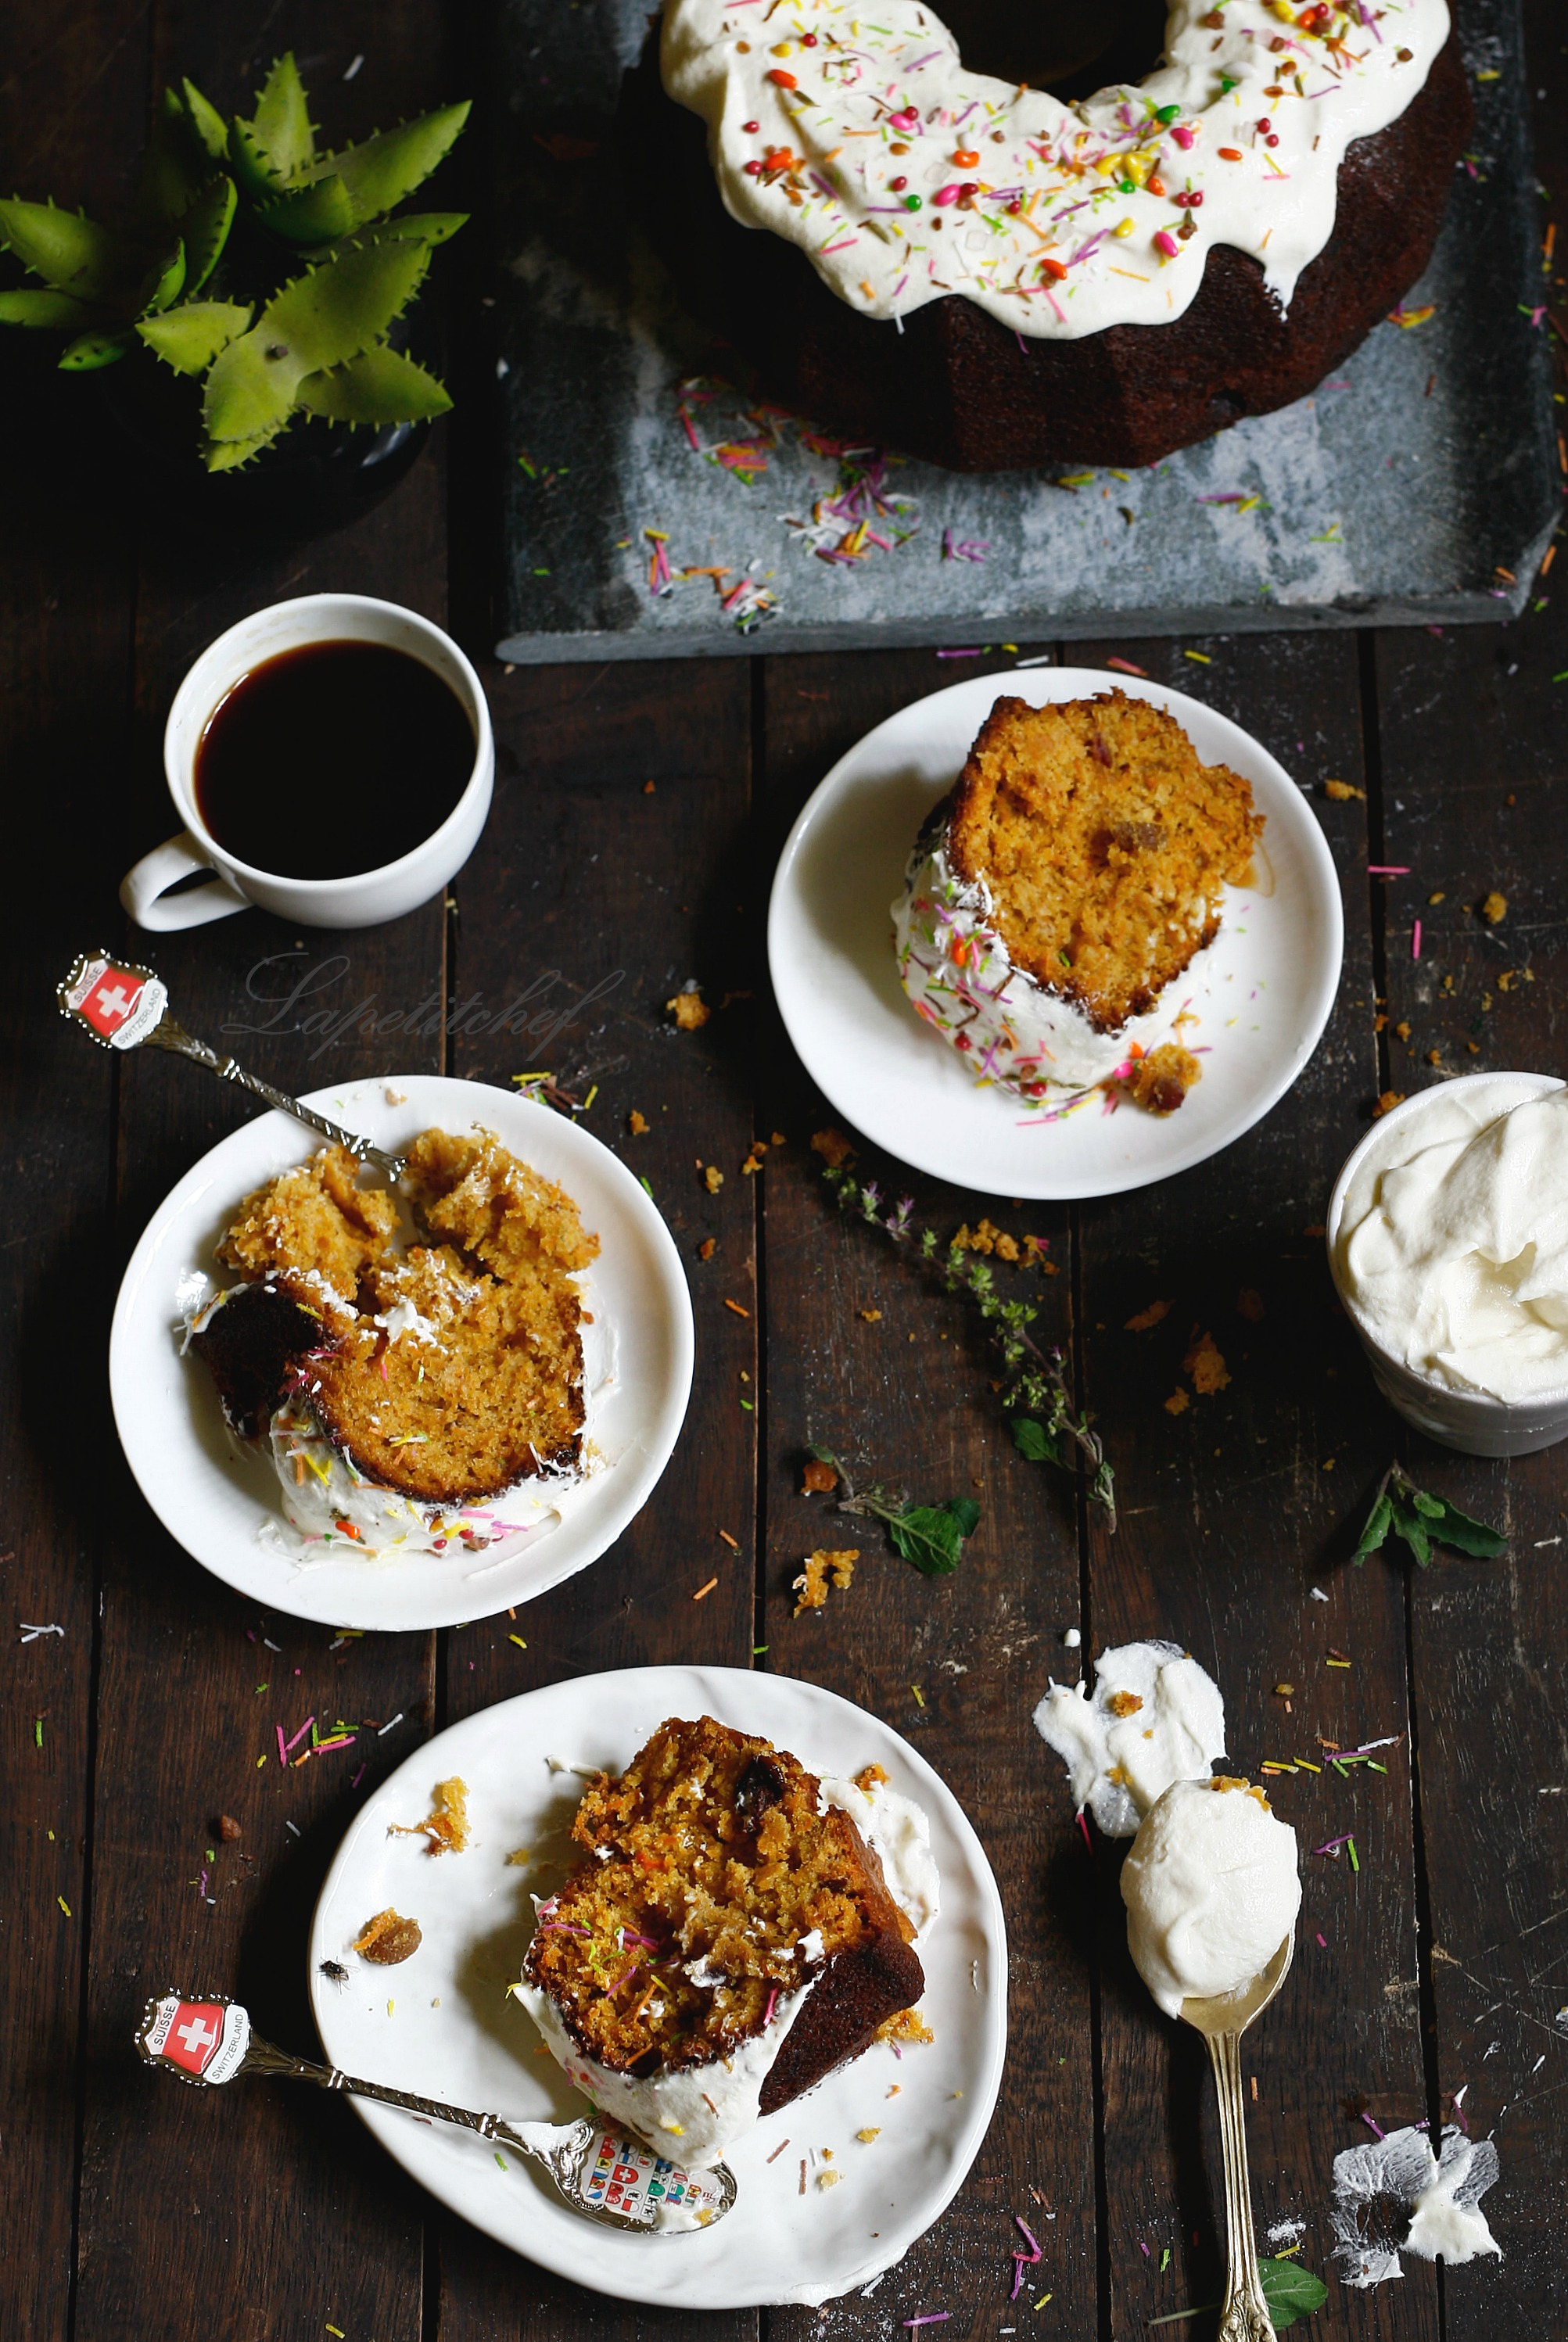 carrot and banana cake with dates and raisins